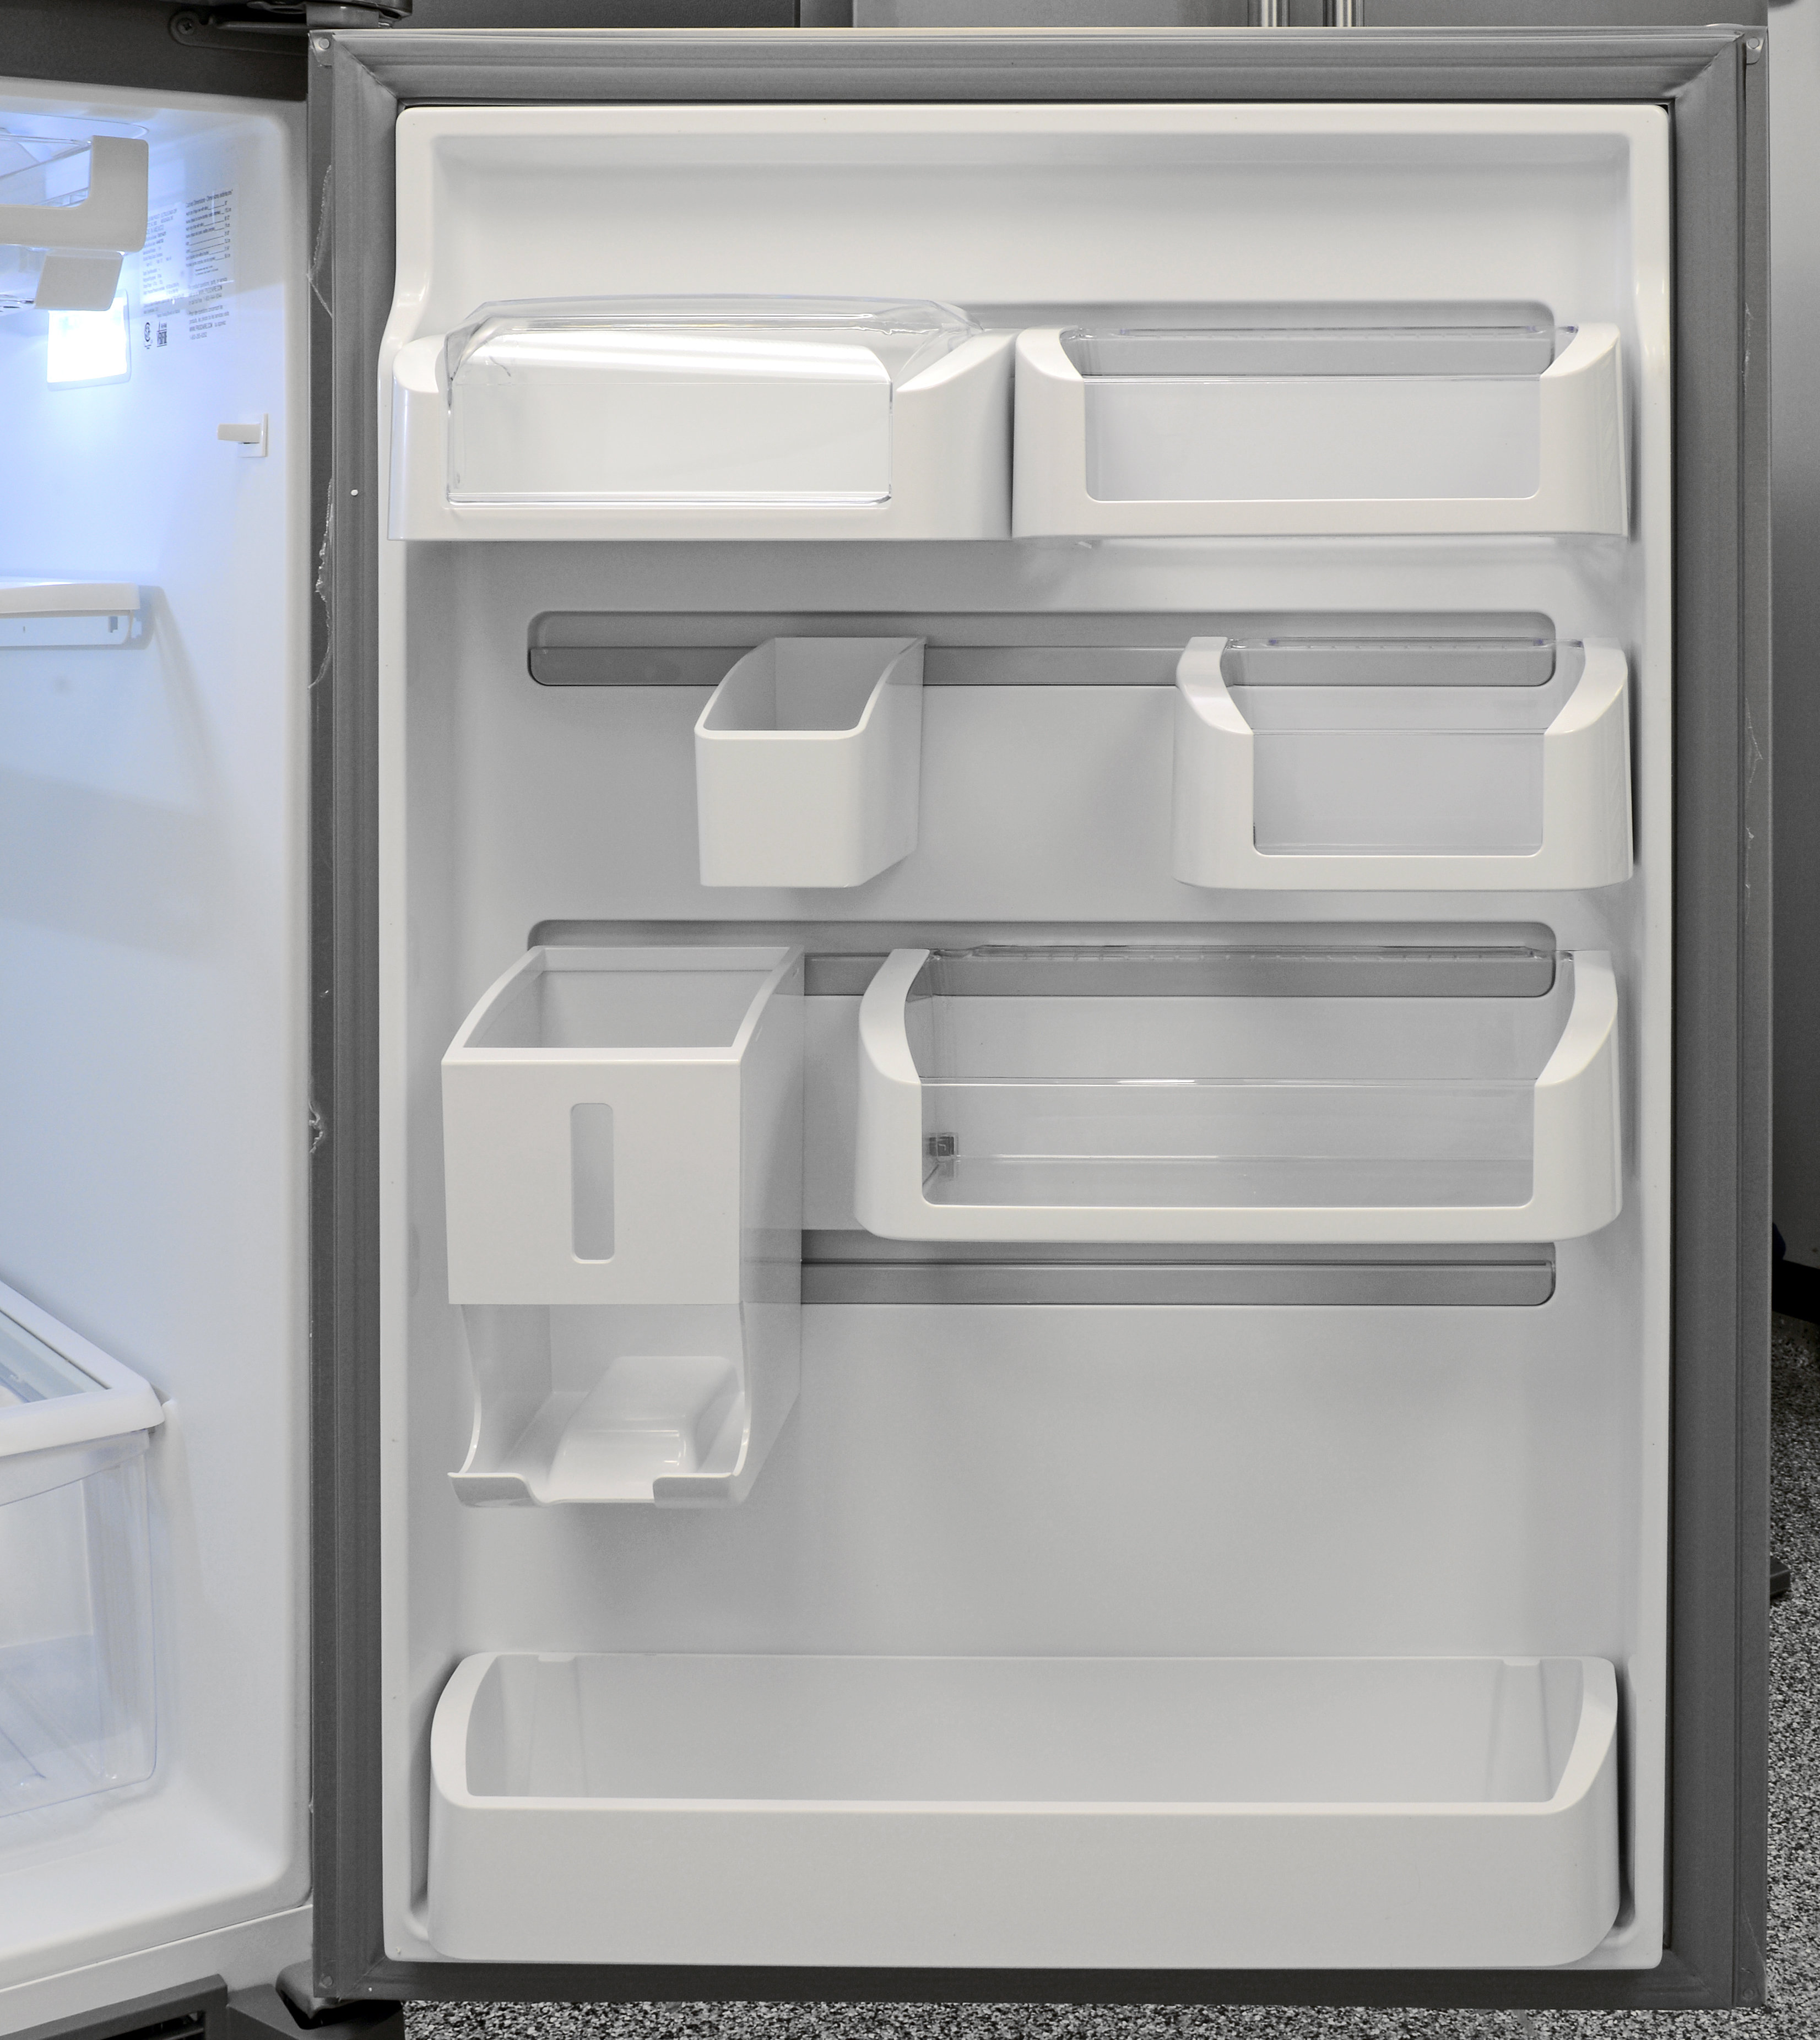 The Frigidaire Gallery FGHI2164QF's Custom-Flex door is completely customizable. Shelves even slide to the left and right for easy access.